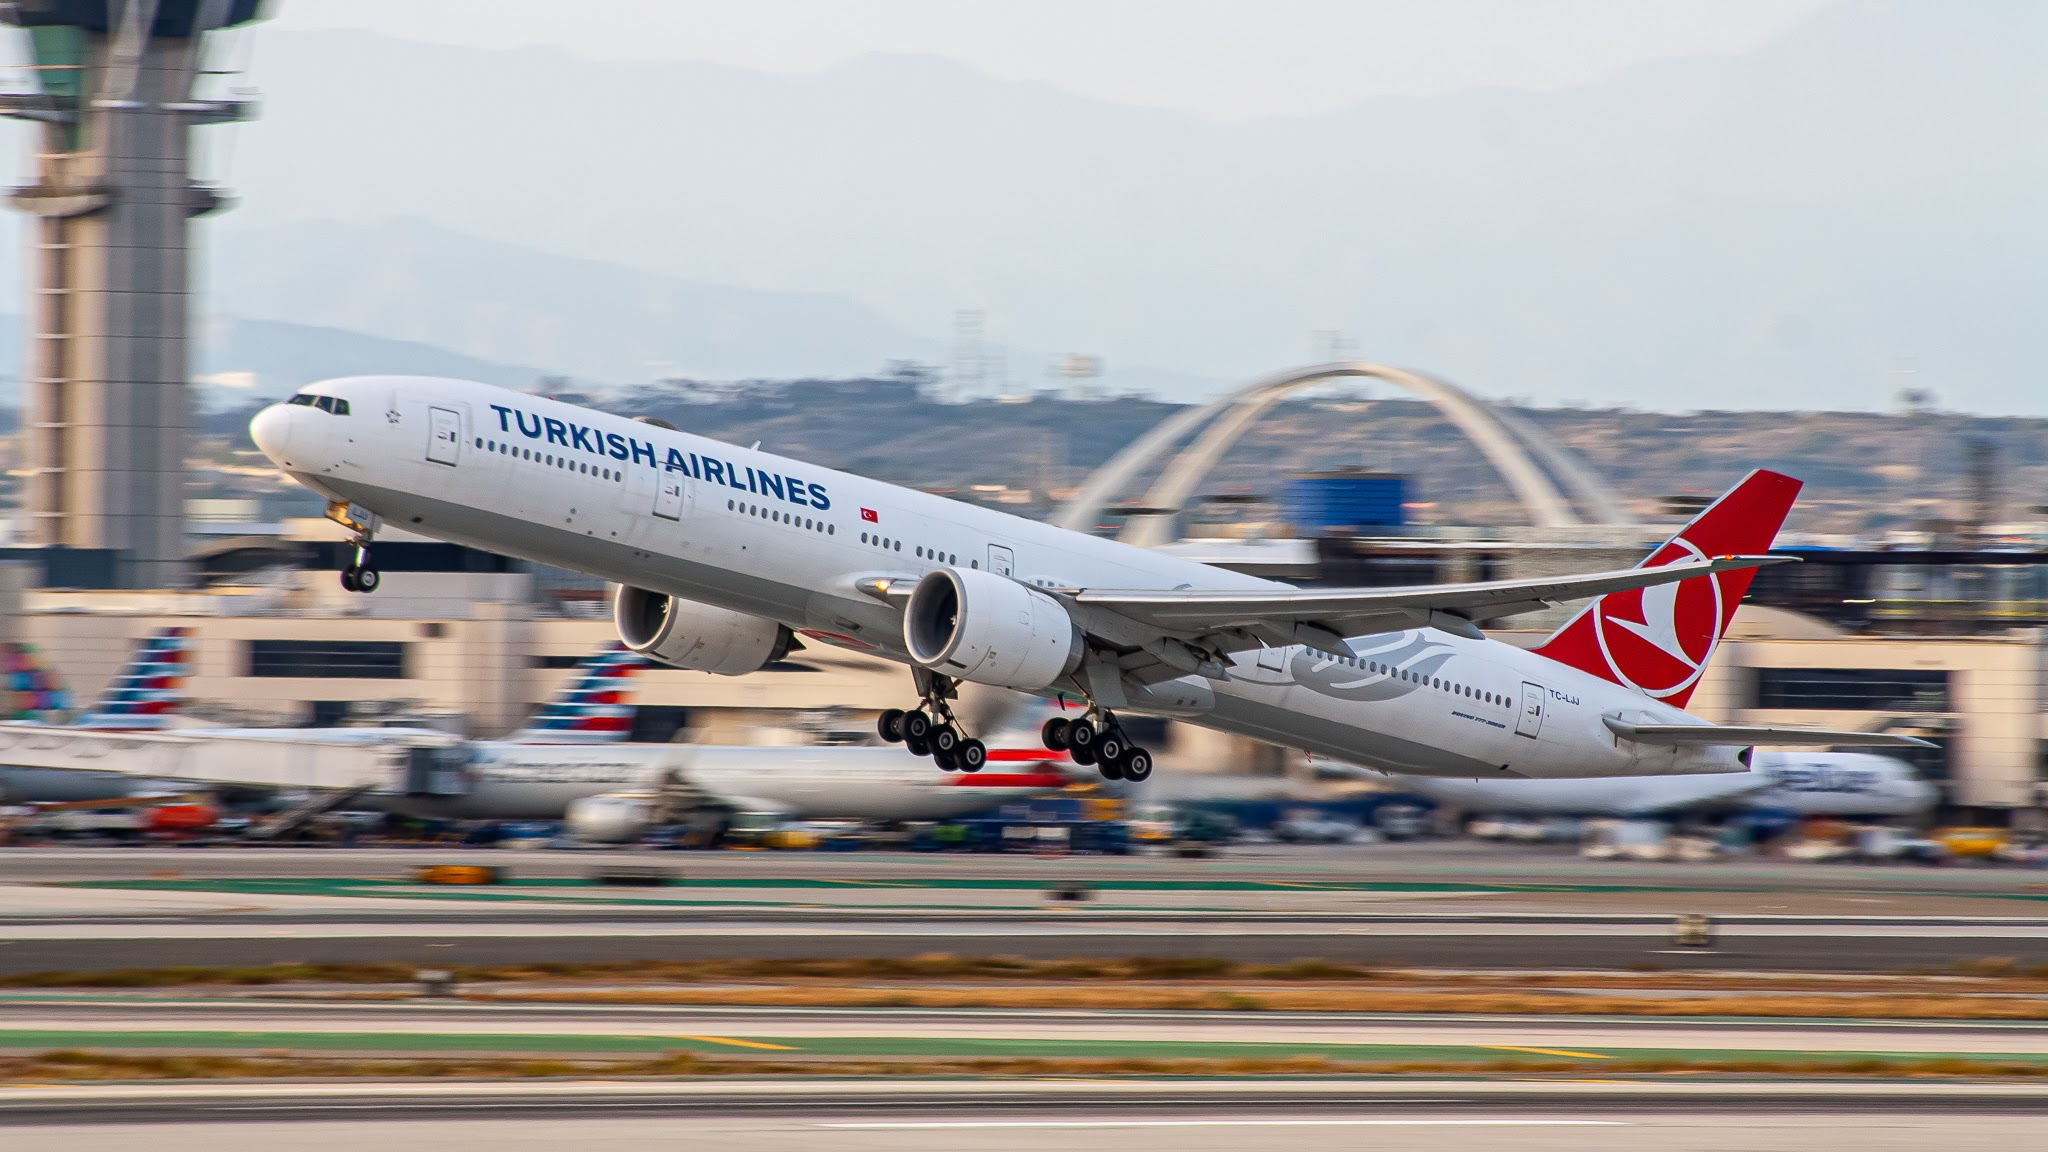 Photo of TC-LJJ - Turkish Airlines Boeing 777-300ER at LAX